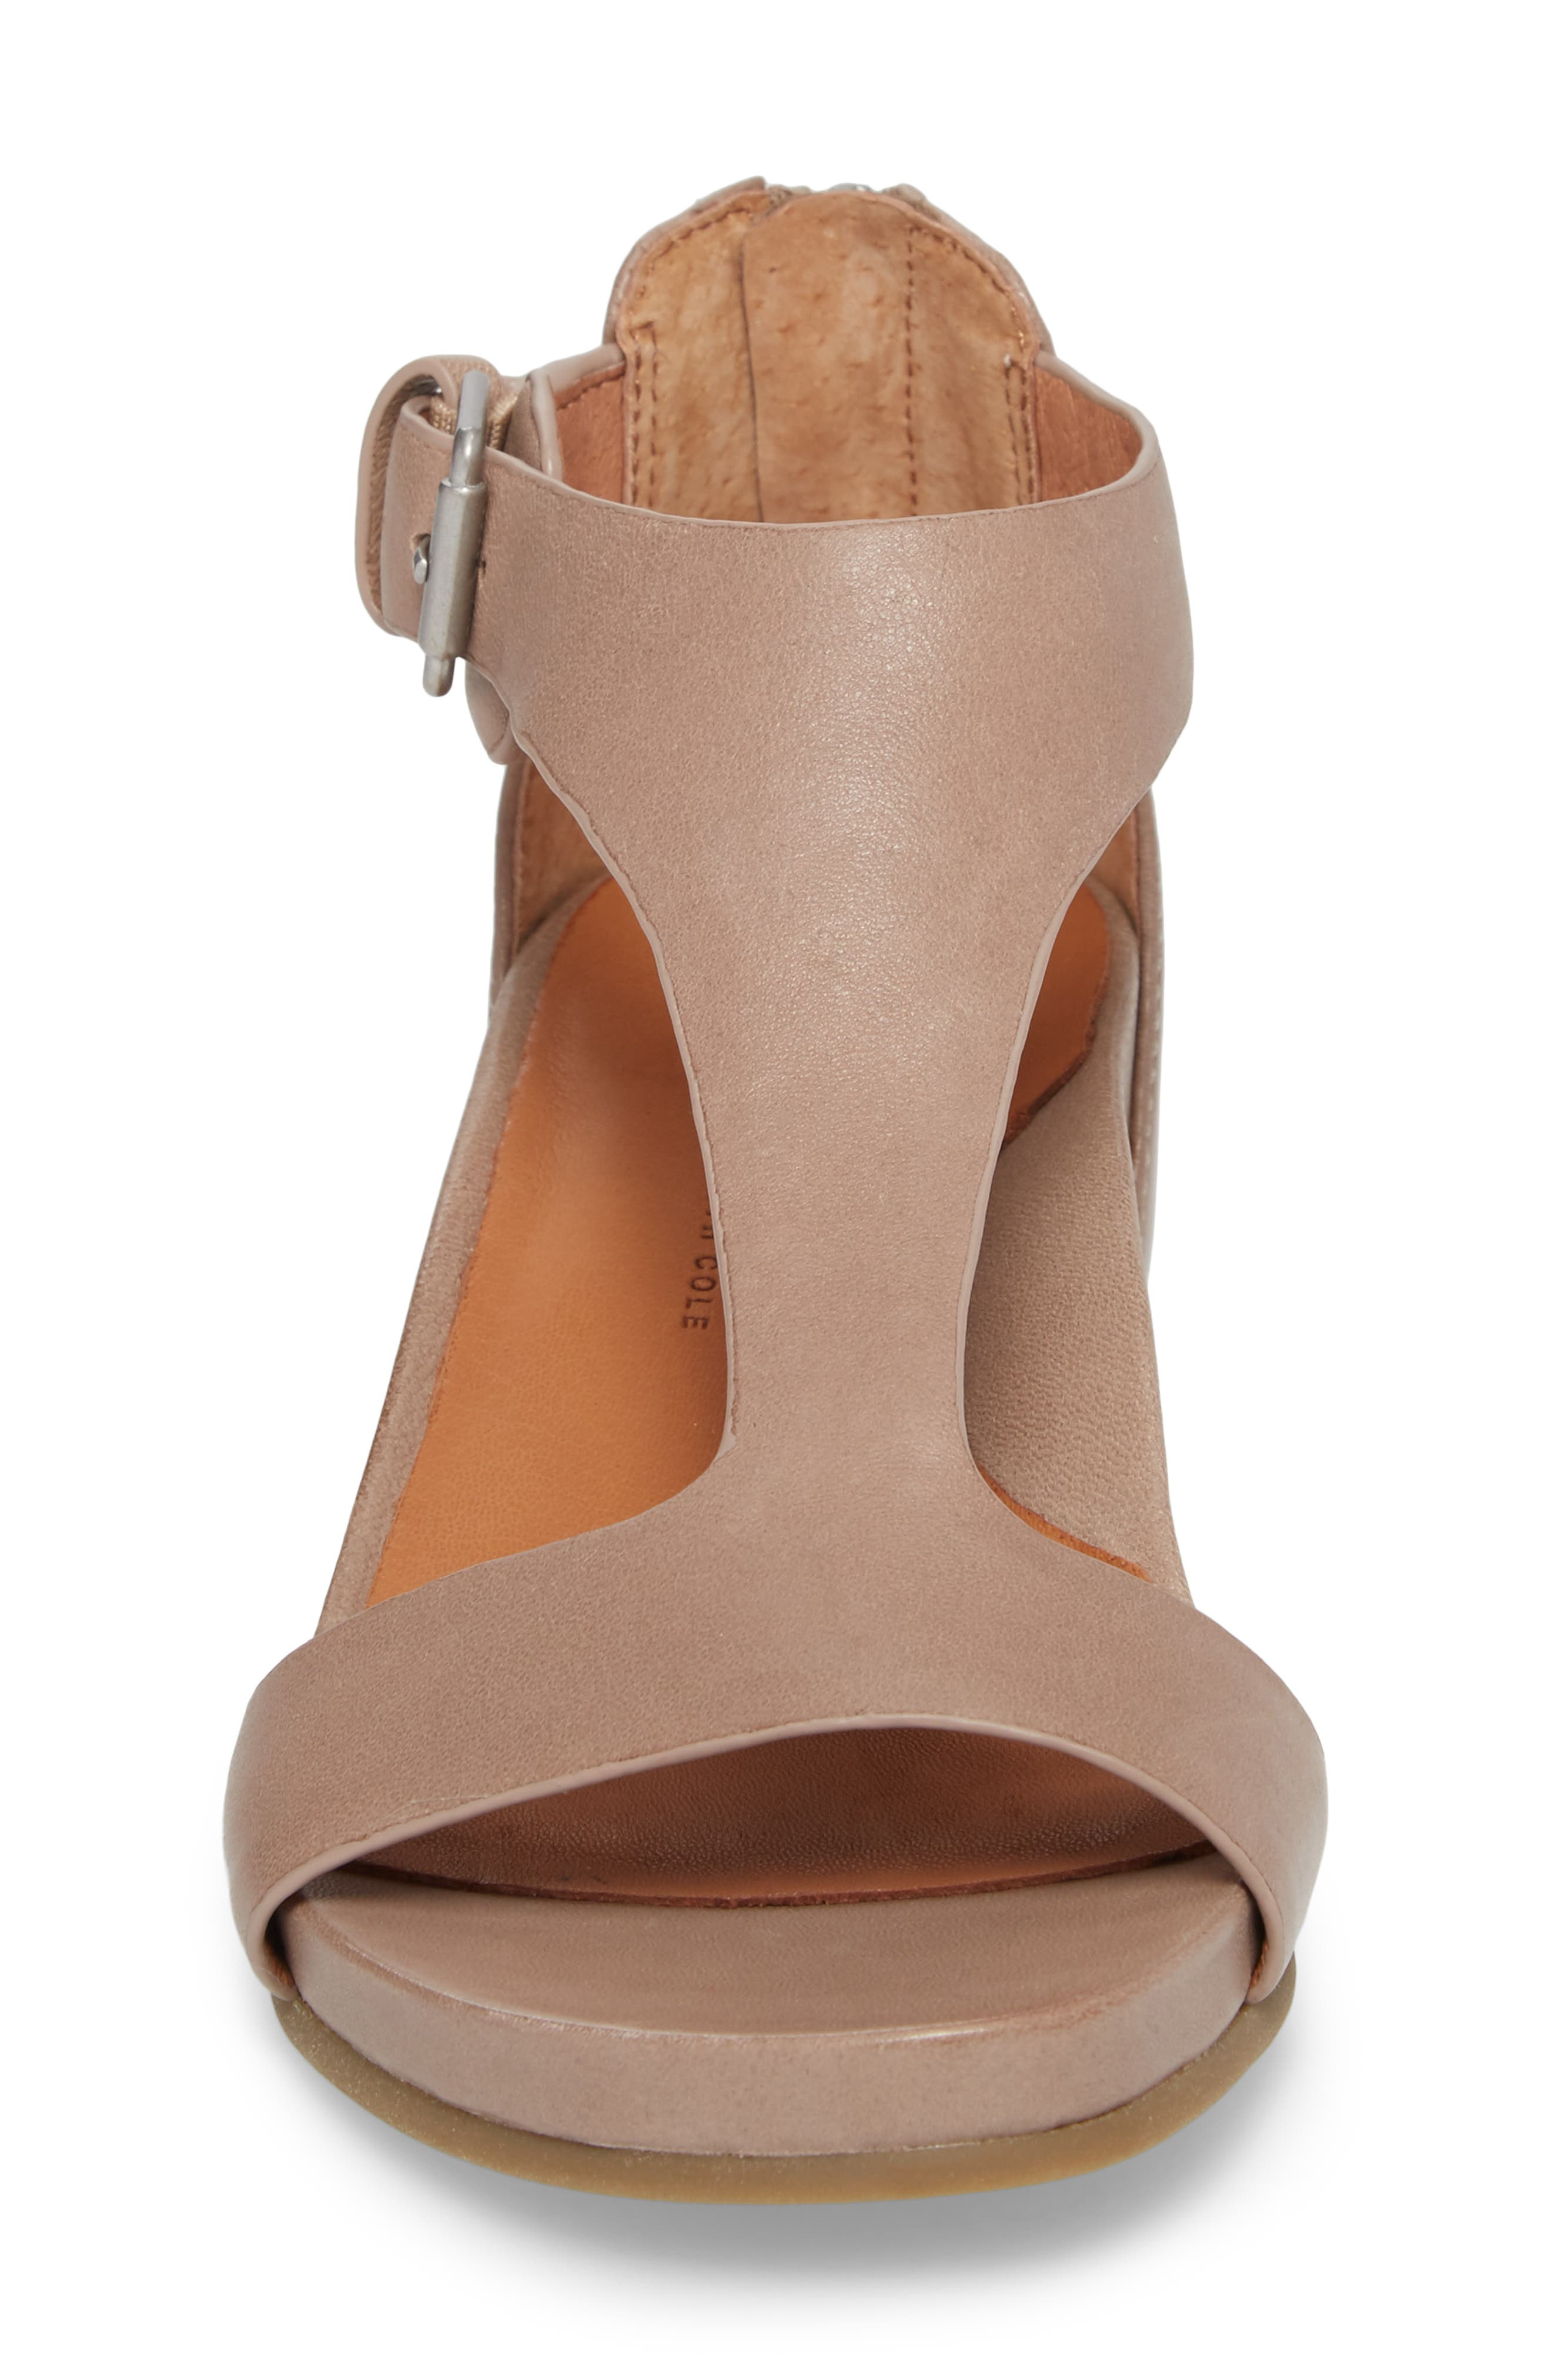 GENTLE SOULS BY KENNETH COLE, Gisele Wedge Sandal, Alternate thumbnail 4, color, PUTTY LEATHER